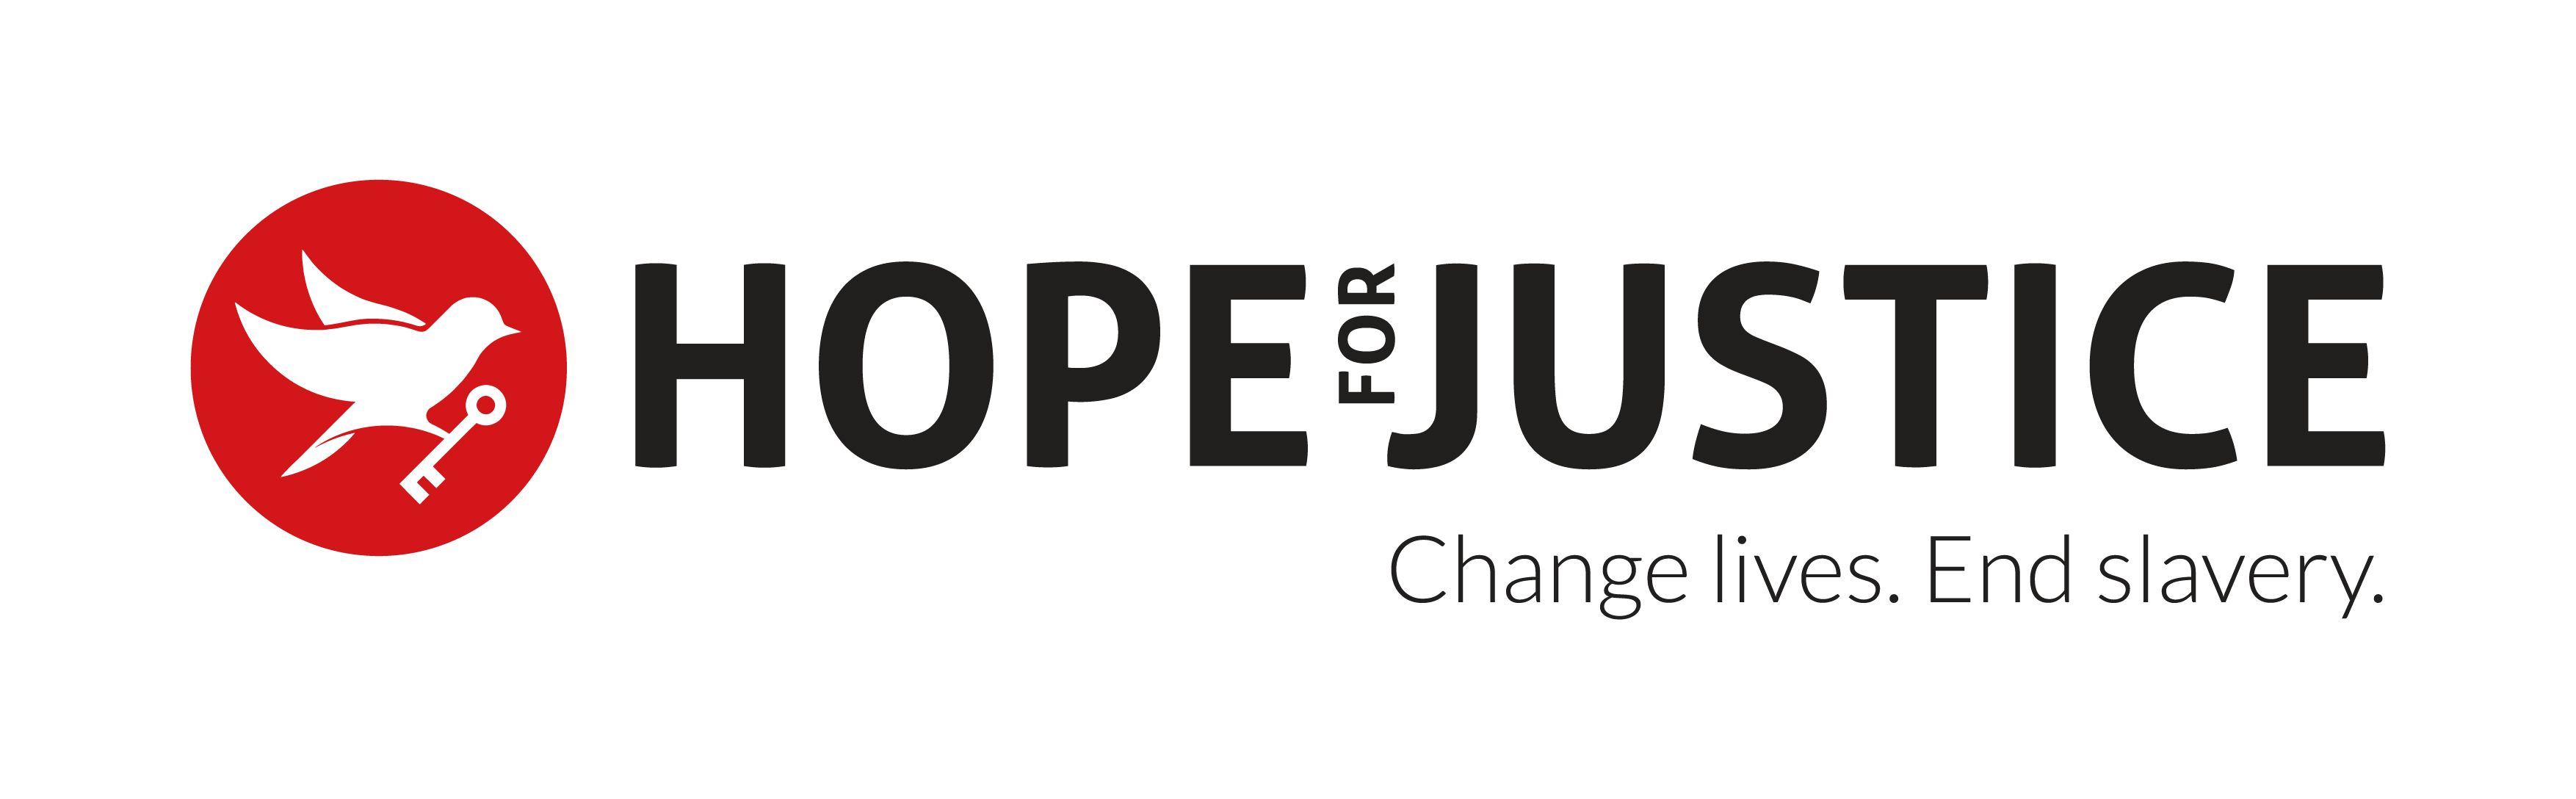 Hope_for_Justice_logo_2017_jpg.jpg?profile=RESIZE_400x